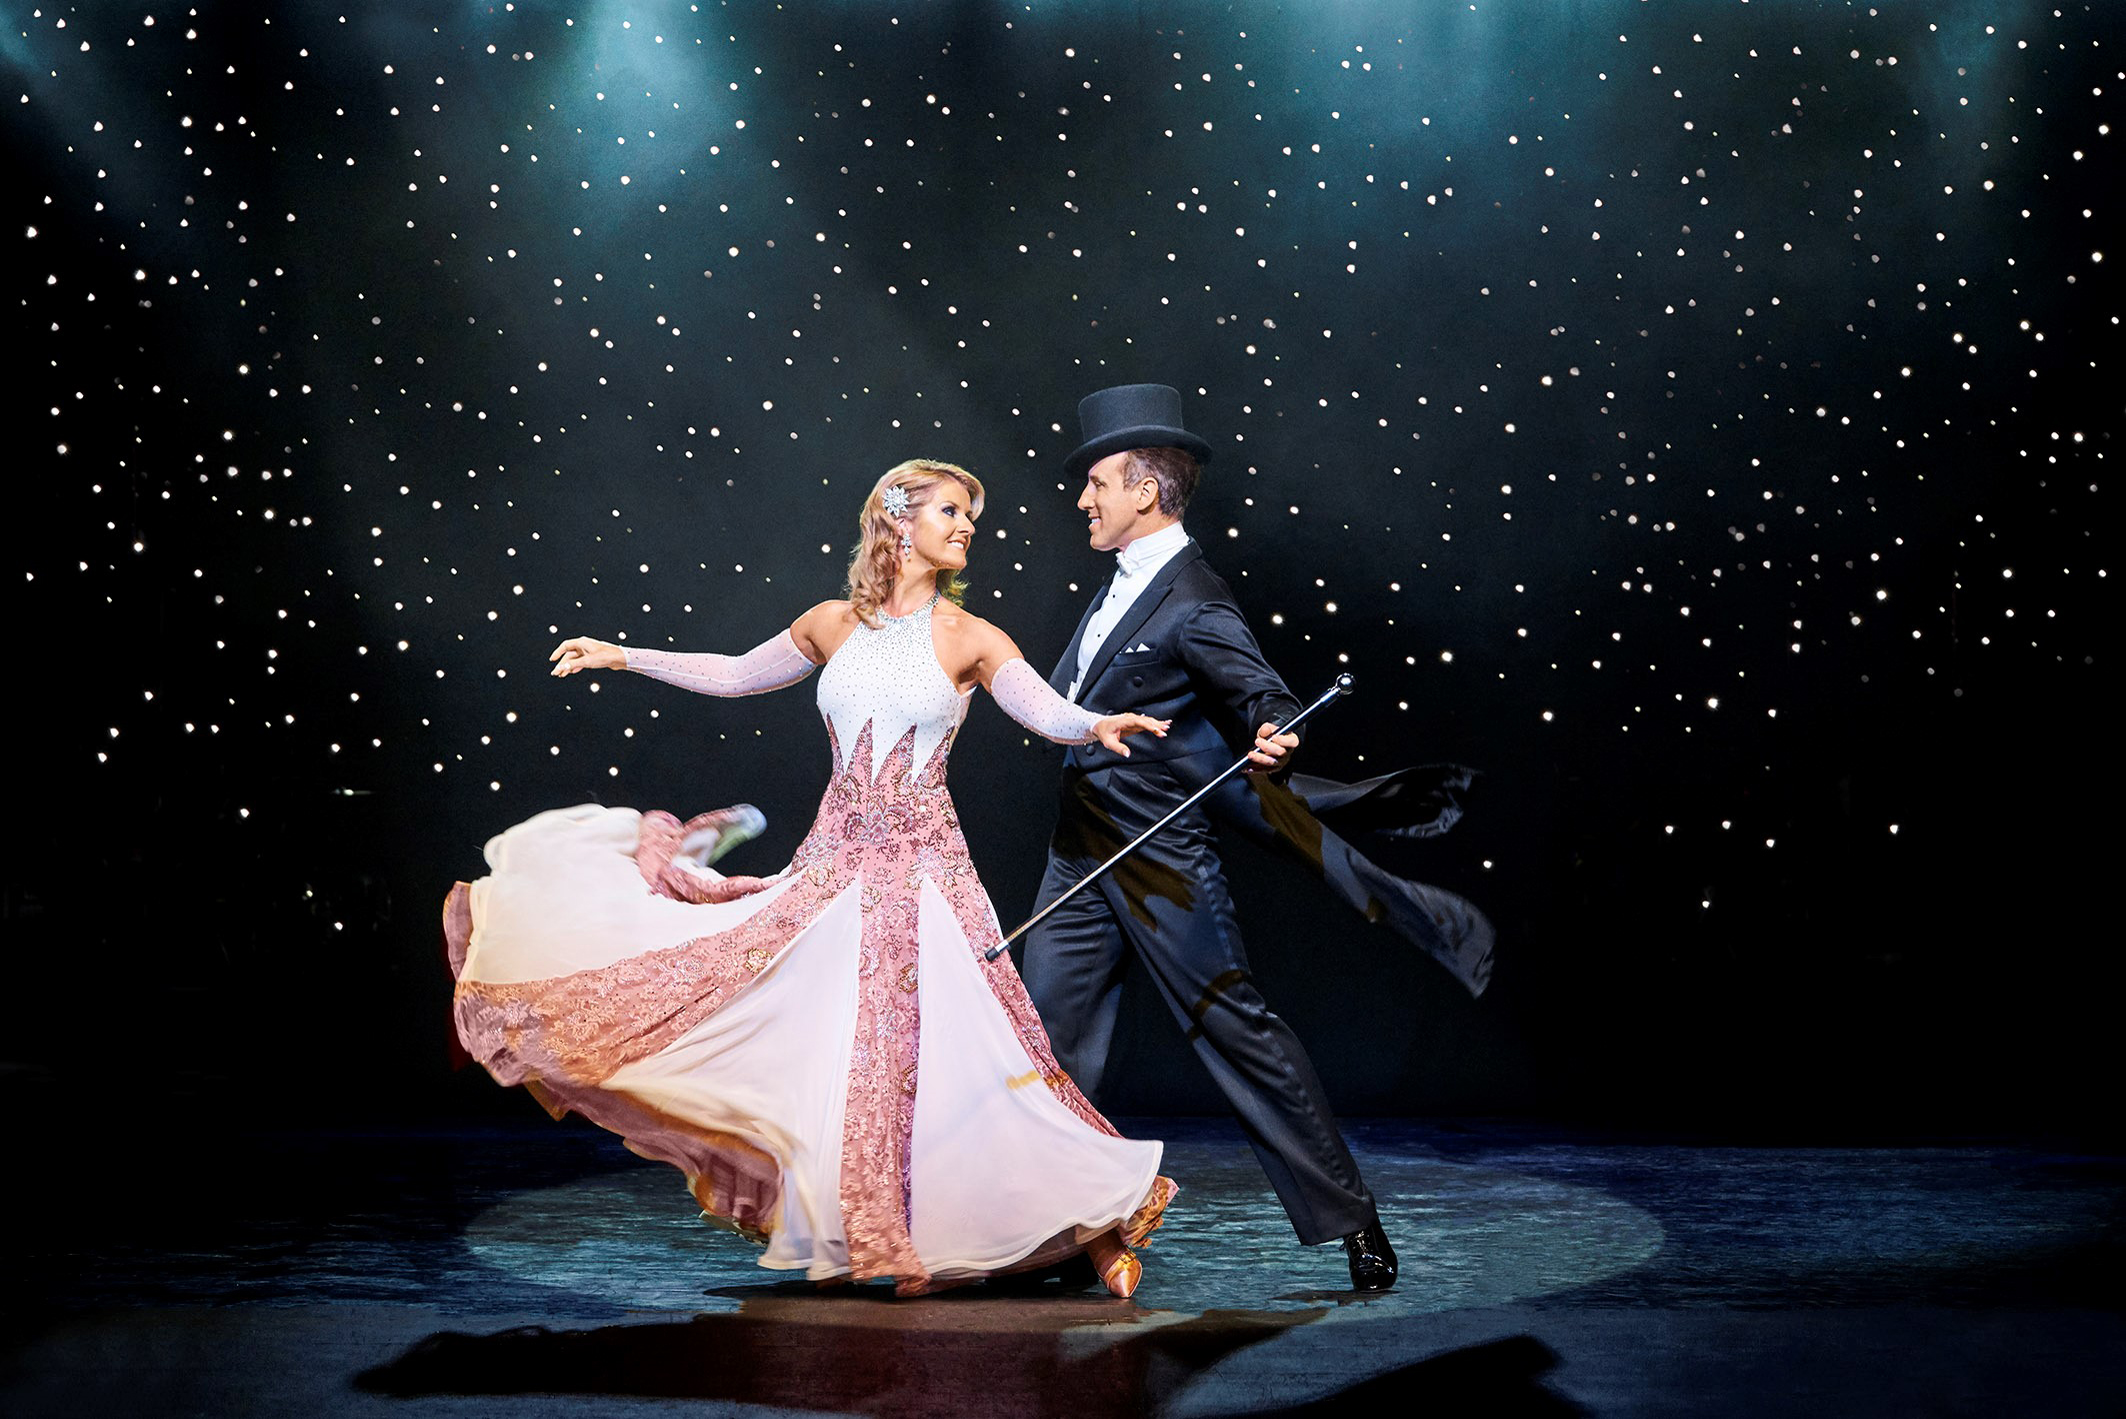 DANCE: Anton Du Beke and Erin Boag's new show Broadway to Hollywood